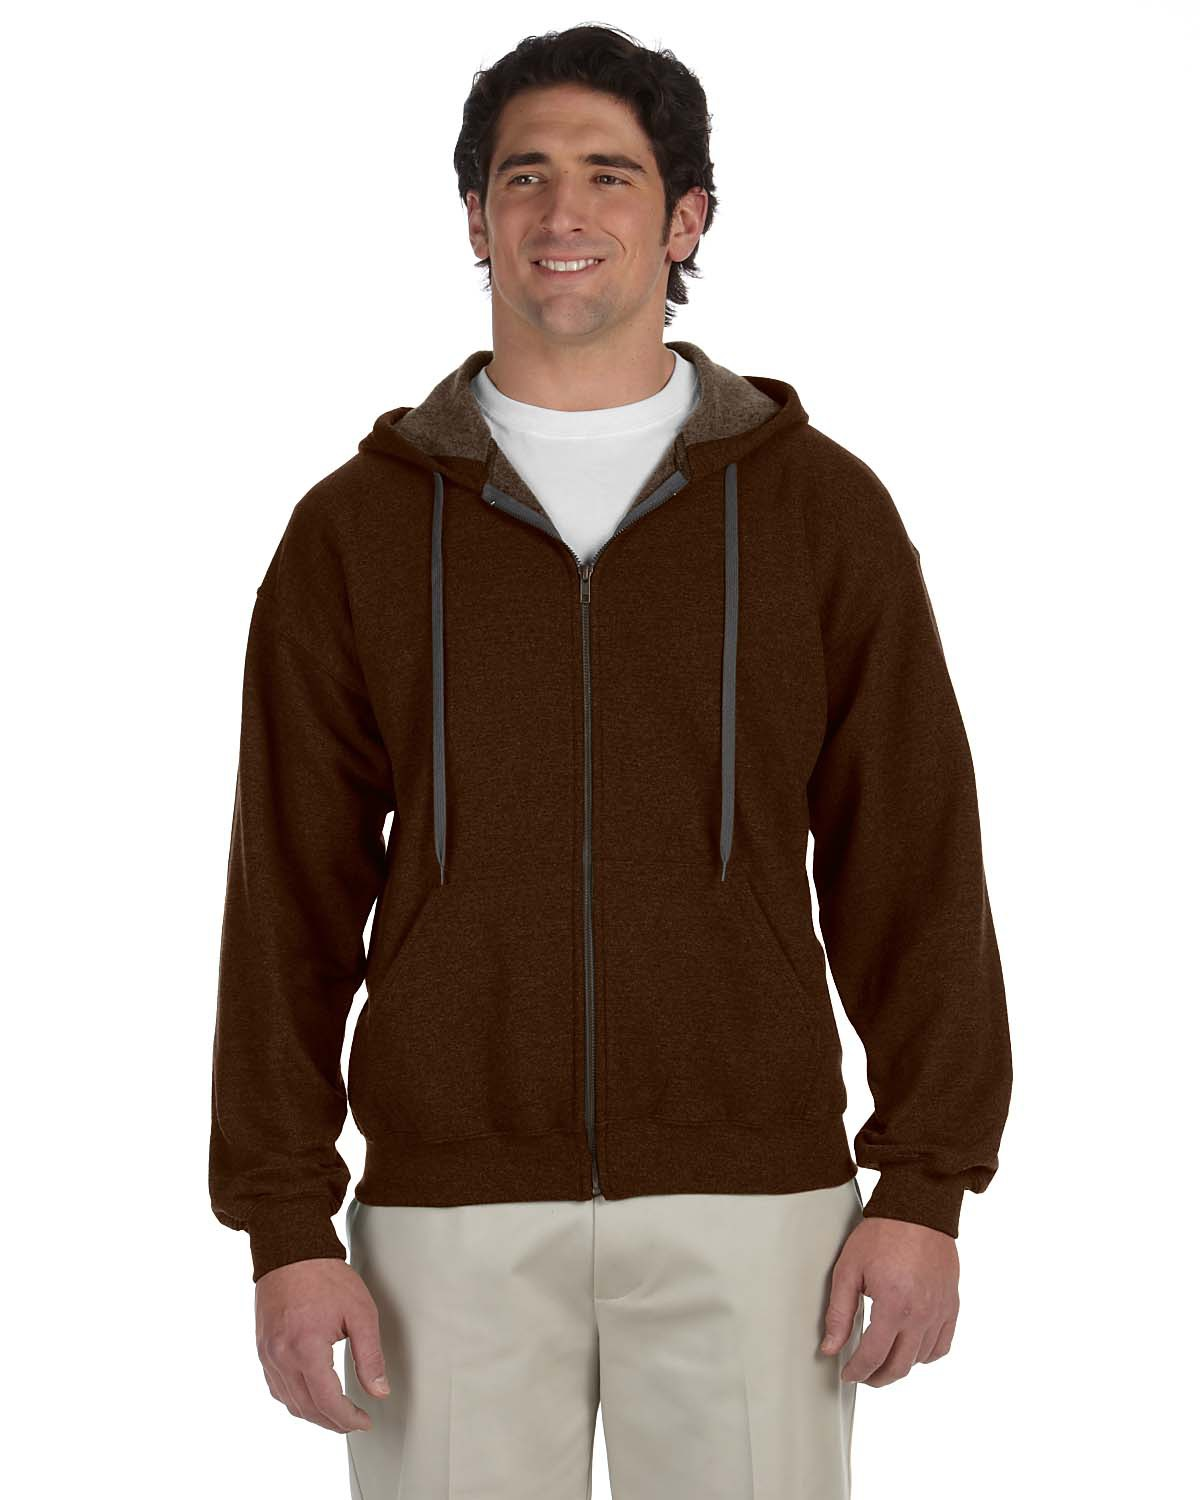 Adult Heavy Blend™ 8 oz. Vintage Full-Zip Hood